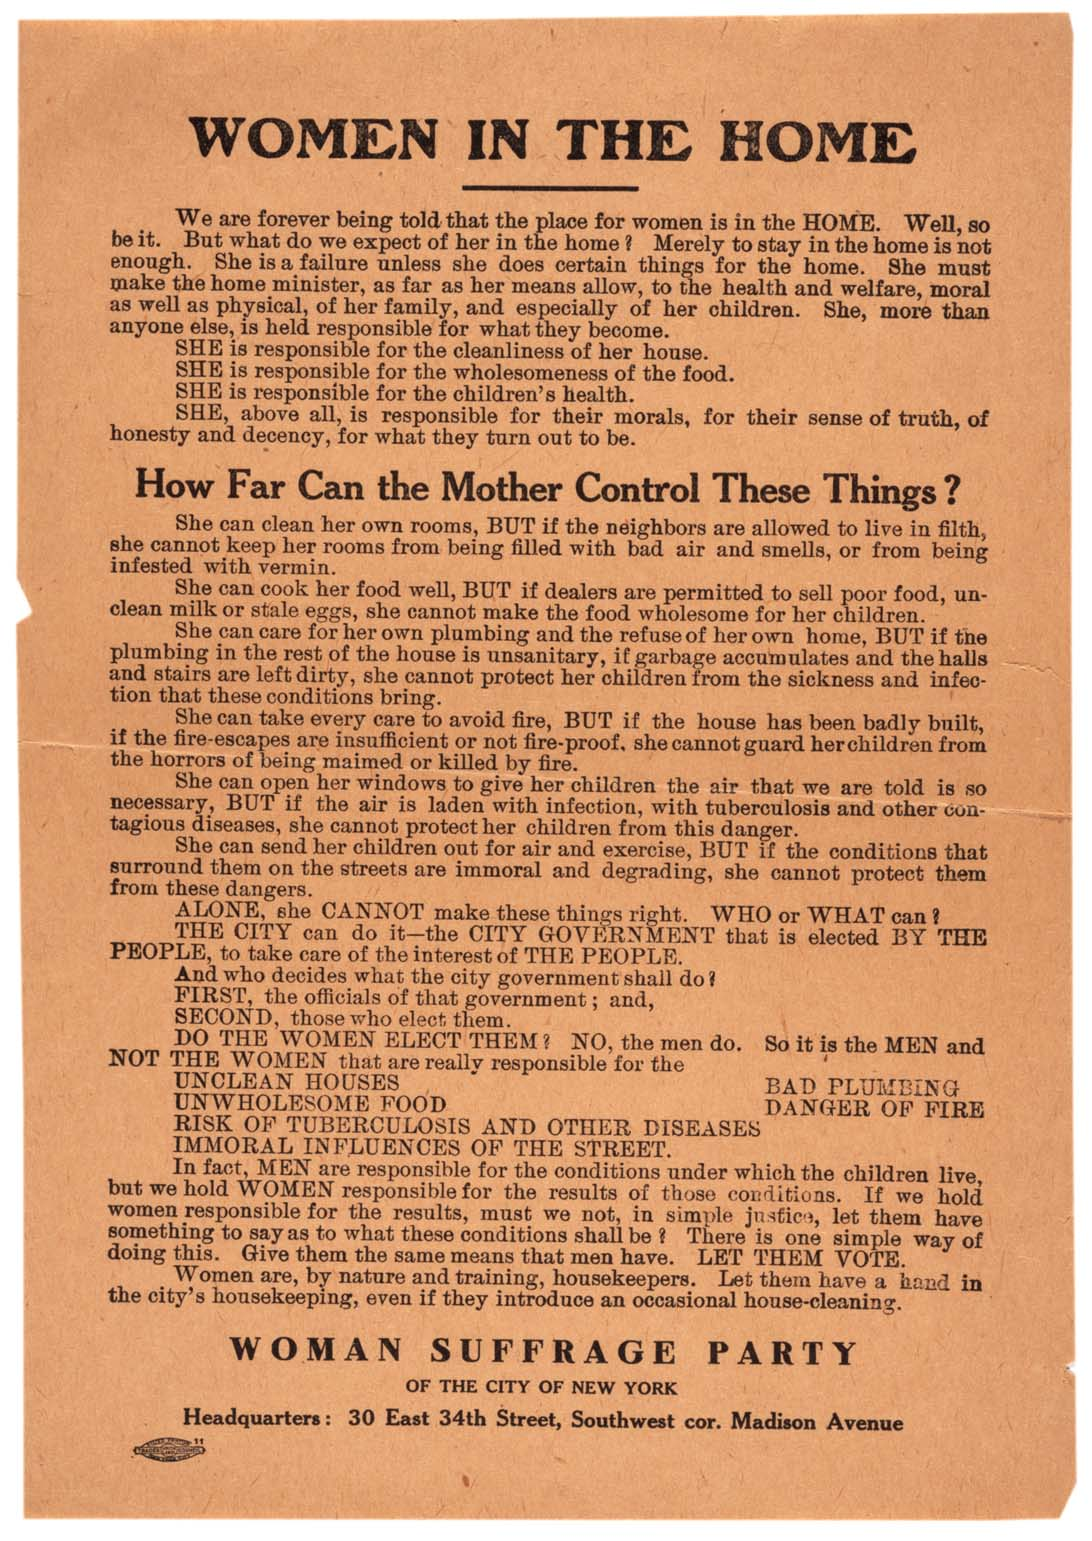 women s suffrage poster gilder lehrman institute of  w suffrage party of the city of new york women in the home broadside